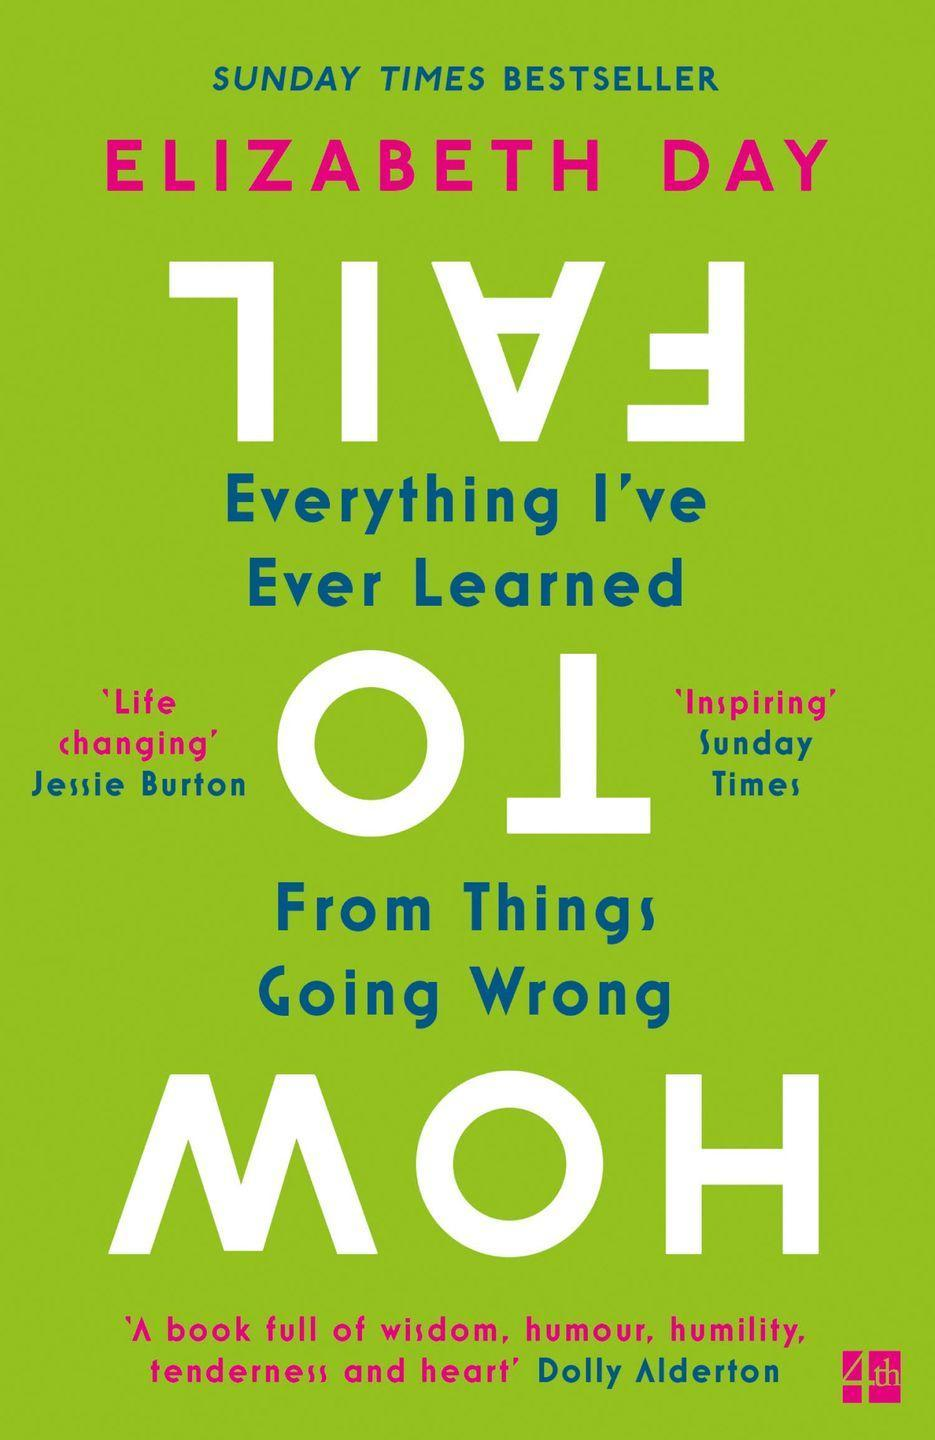 "<p>Elizabeth Day's celebration of things going wrong will convince you that failure is not a bad thing. You will also laugh out loud.</p><p><a class=""link rapid-noclick-resp"" href=""https://www.amazon.co.uk/How-Fail-Everything-Learned-Things/dp/0008327351/ref=sr_1_1?crid=2IPJNR4SF7OTP&dchild=1&keywords=how+to+fail+elizabeth+day&qid=1586946807&sprefix=how+to+fail%2Caps%2C182&sr=8-1&tag=hearstuk-yahoo-21&ascsubtag=%5Bartid%7C1921.g.32141605%5Bsrc%7Cyahoo-uk"" rel=""nofollow noopener"" target=""_blank"" data-ylk=""slk:SHOP NOW"">SHOP NOW</a></p>"